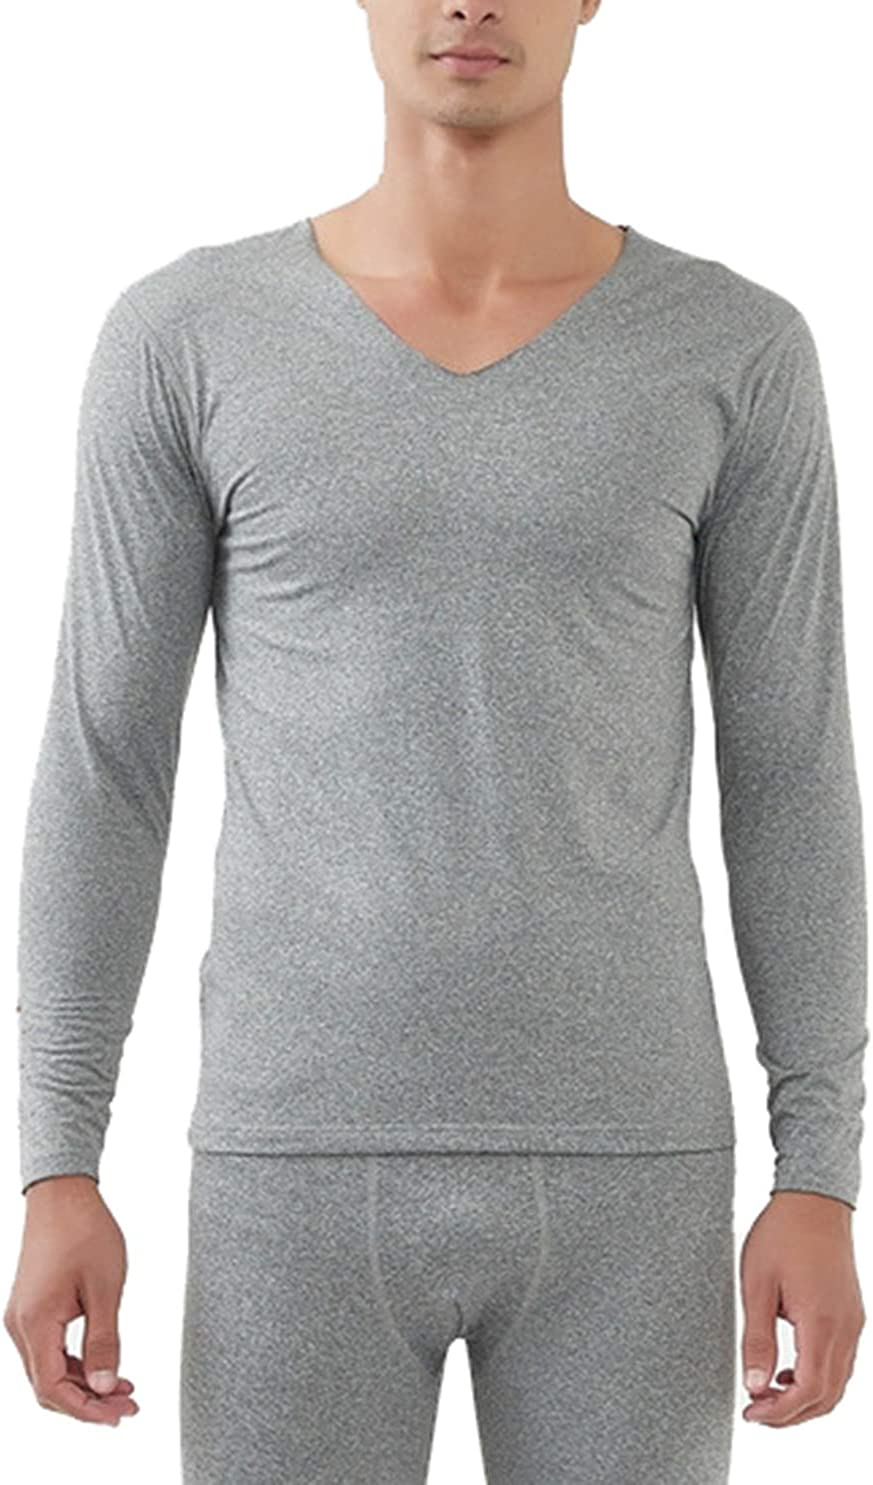 Femaroly Men's Ultra Soft Thermal Underwear Set Base Layer Top and Bottom with Fleece Lined